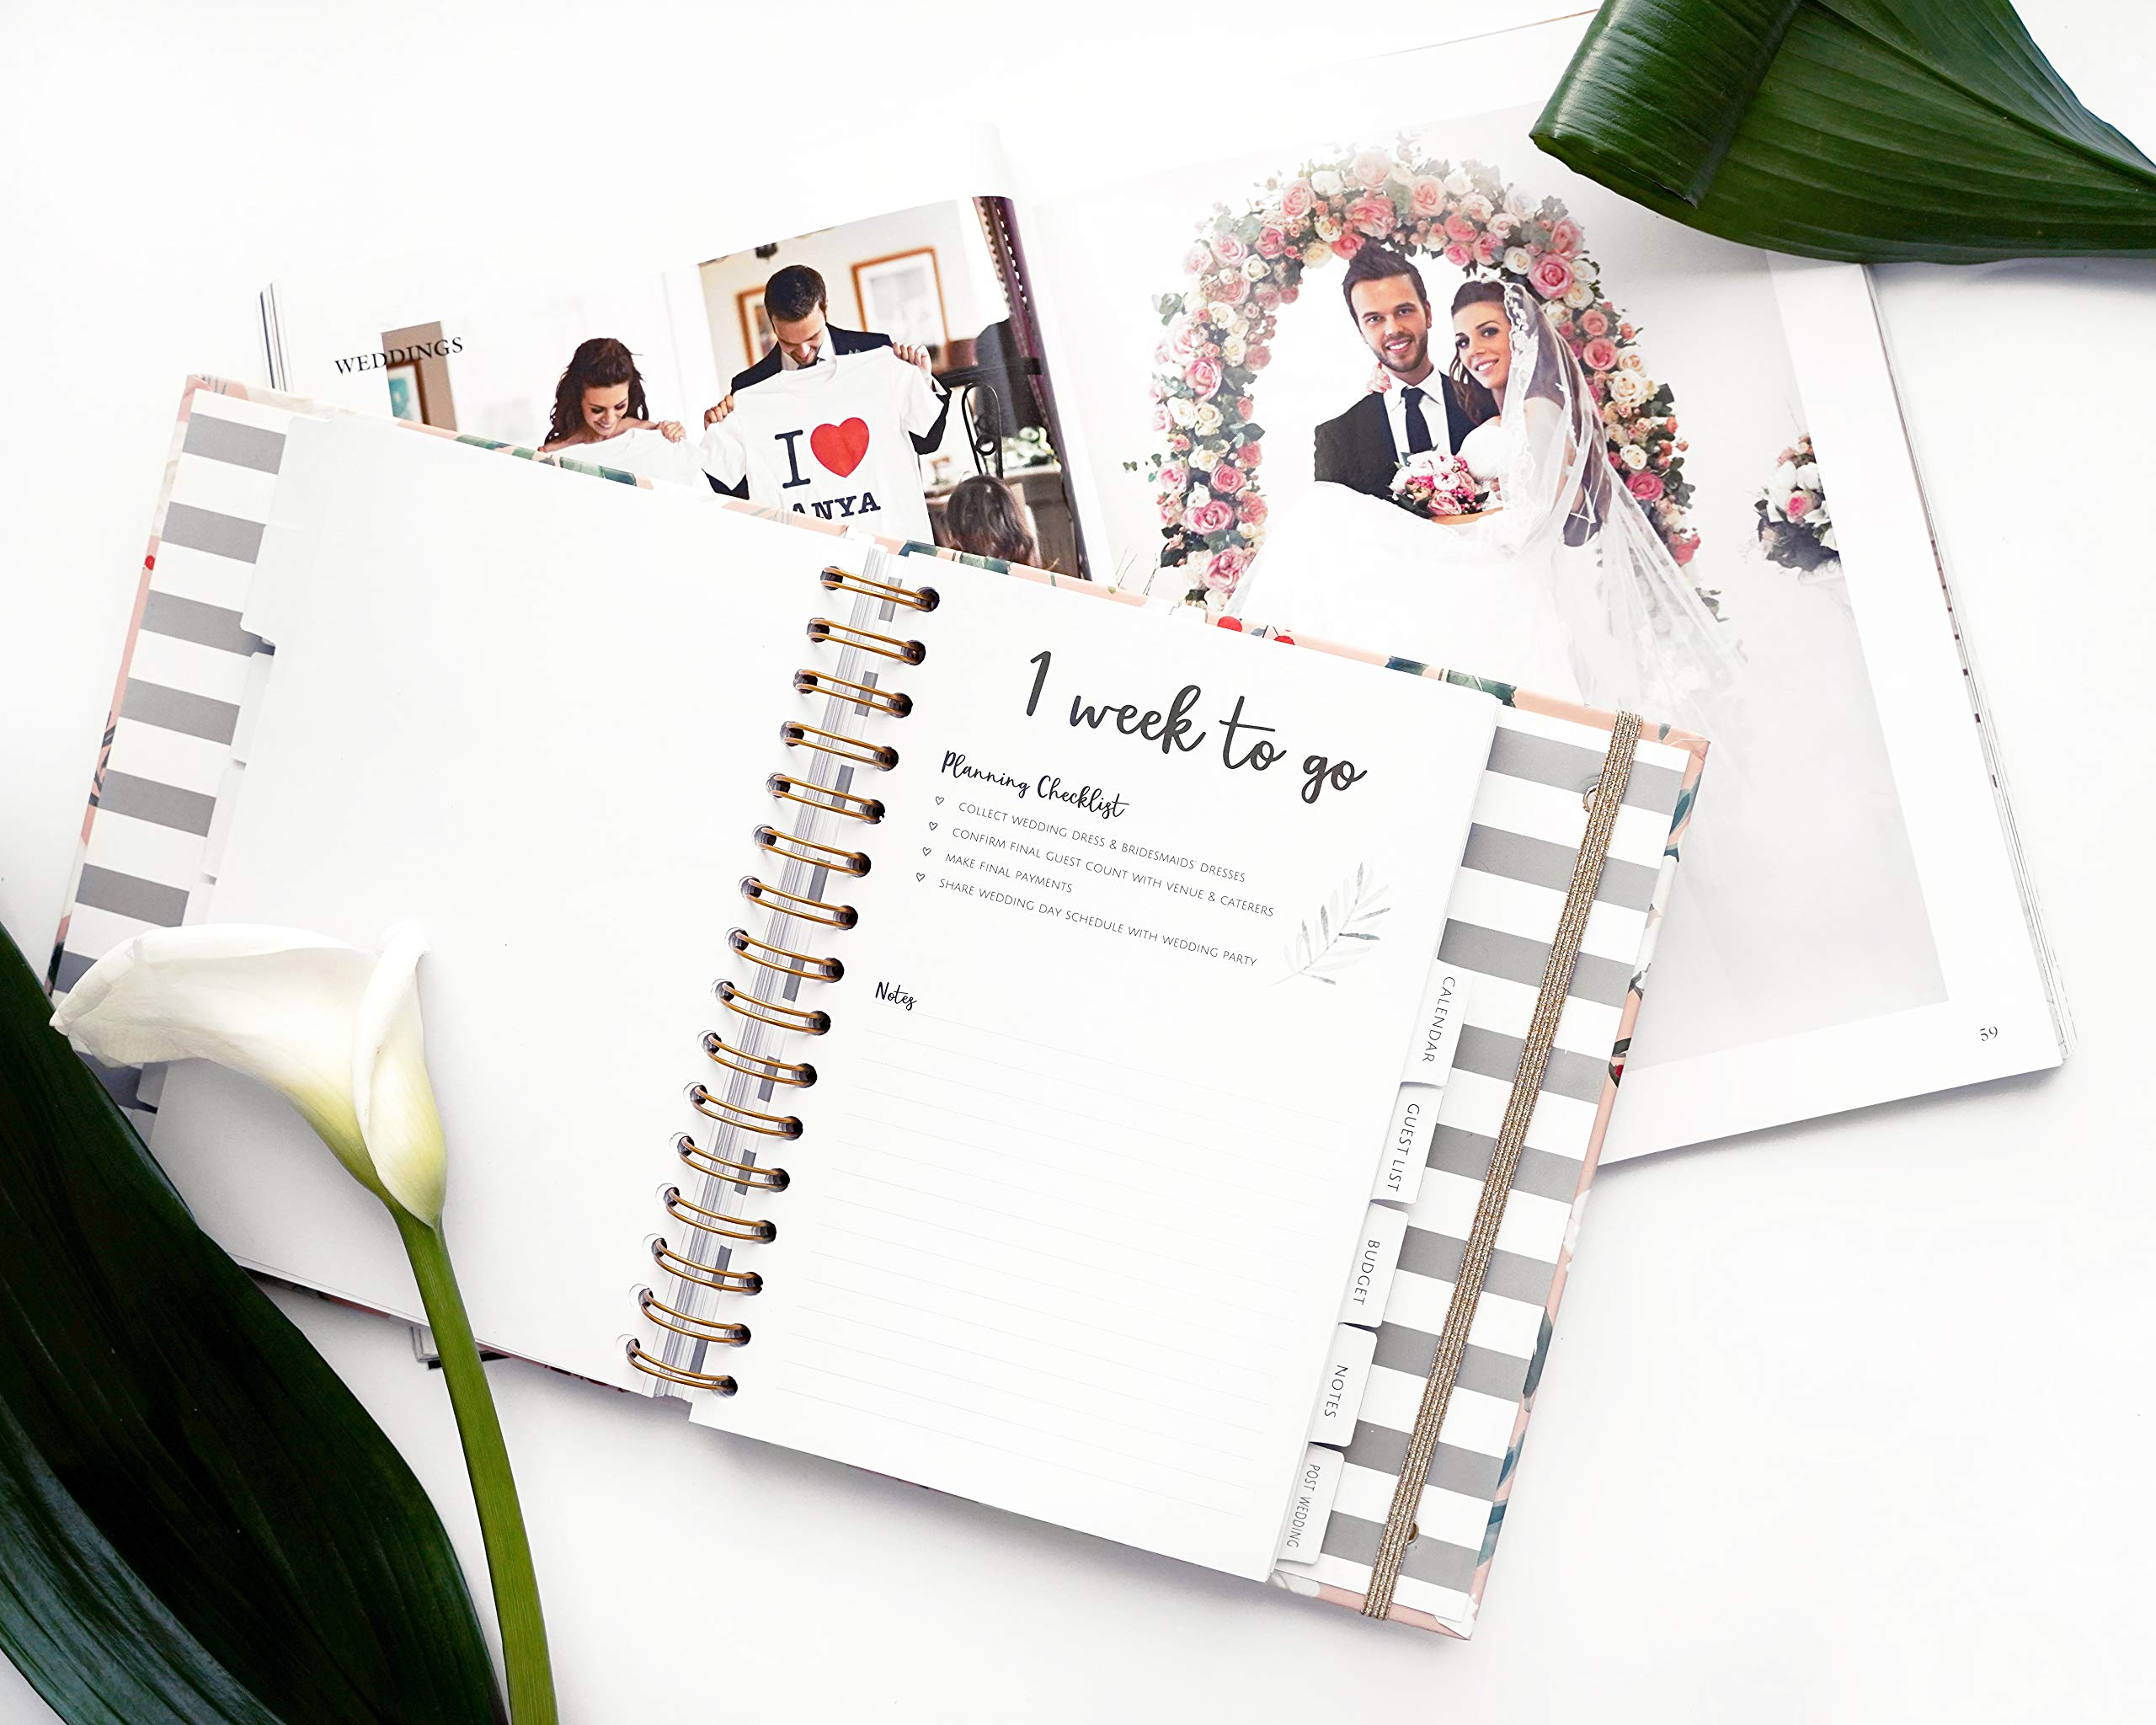 The Dream Wedding Planner | Luxury Wedding Organizer Book with Beautiful Souvenir Gift Box | Ideal Engagement Present for Couples | Perfect for Planning Your Dream Wedding by The Caledonia Design Co. (Image #5)